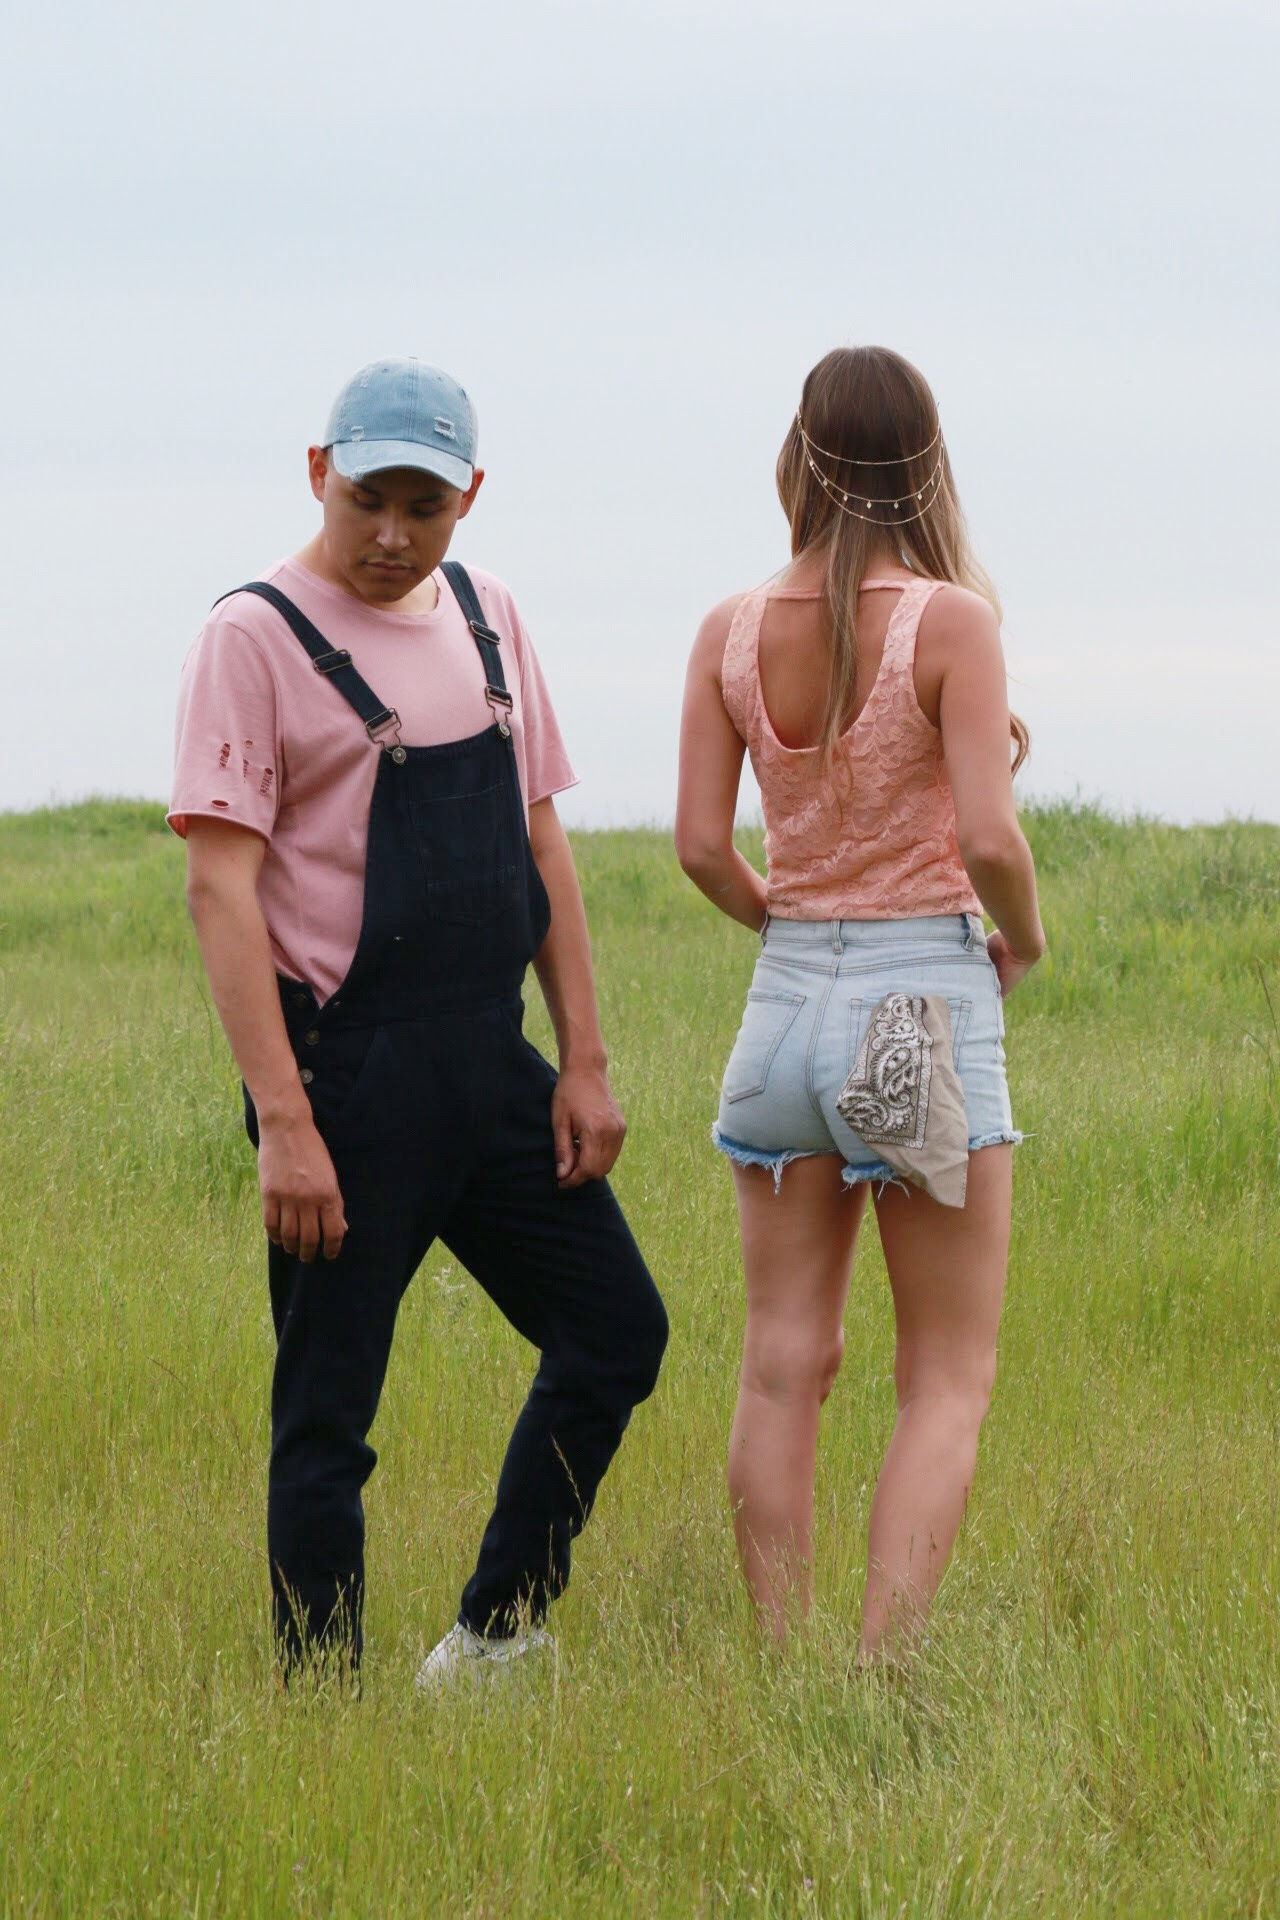 Men's Festival Fashion includes Overalls and Distressed Basic Tees. Lace Tops and Denim Shorts with a Bandana and a gold chain hair accessory.